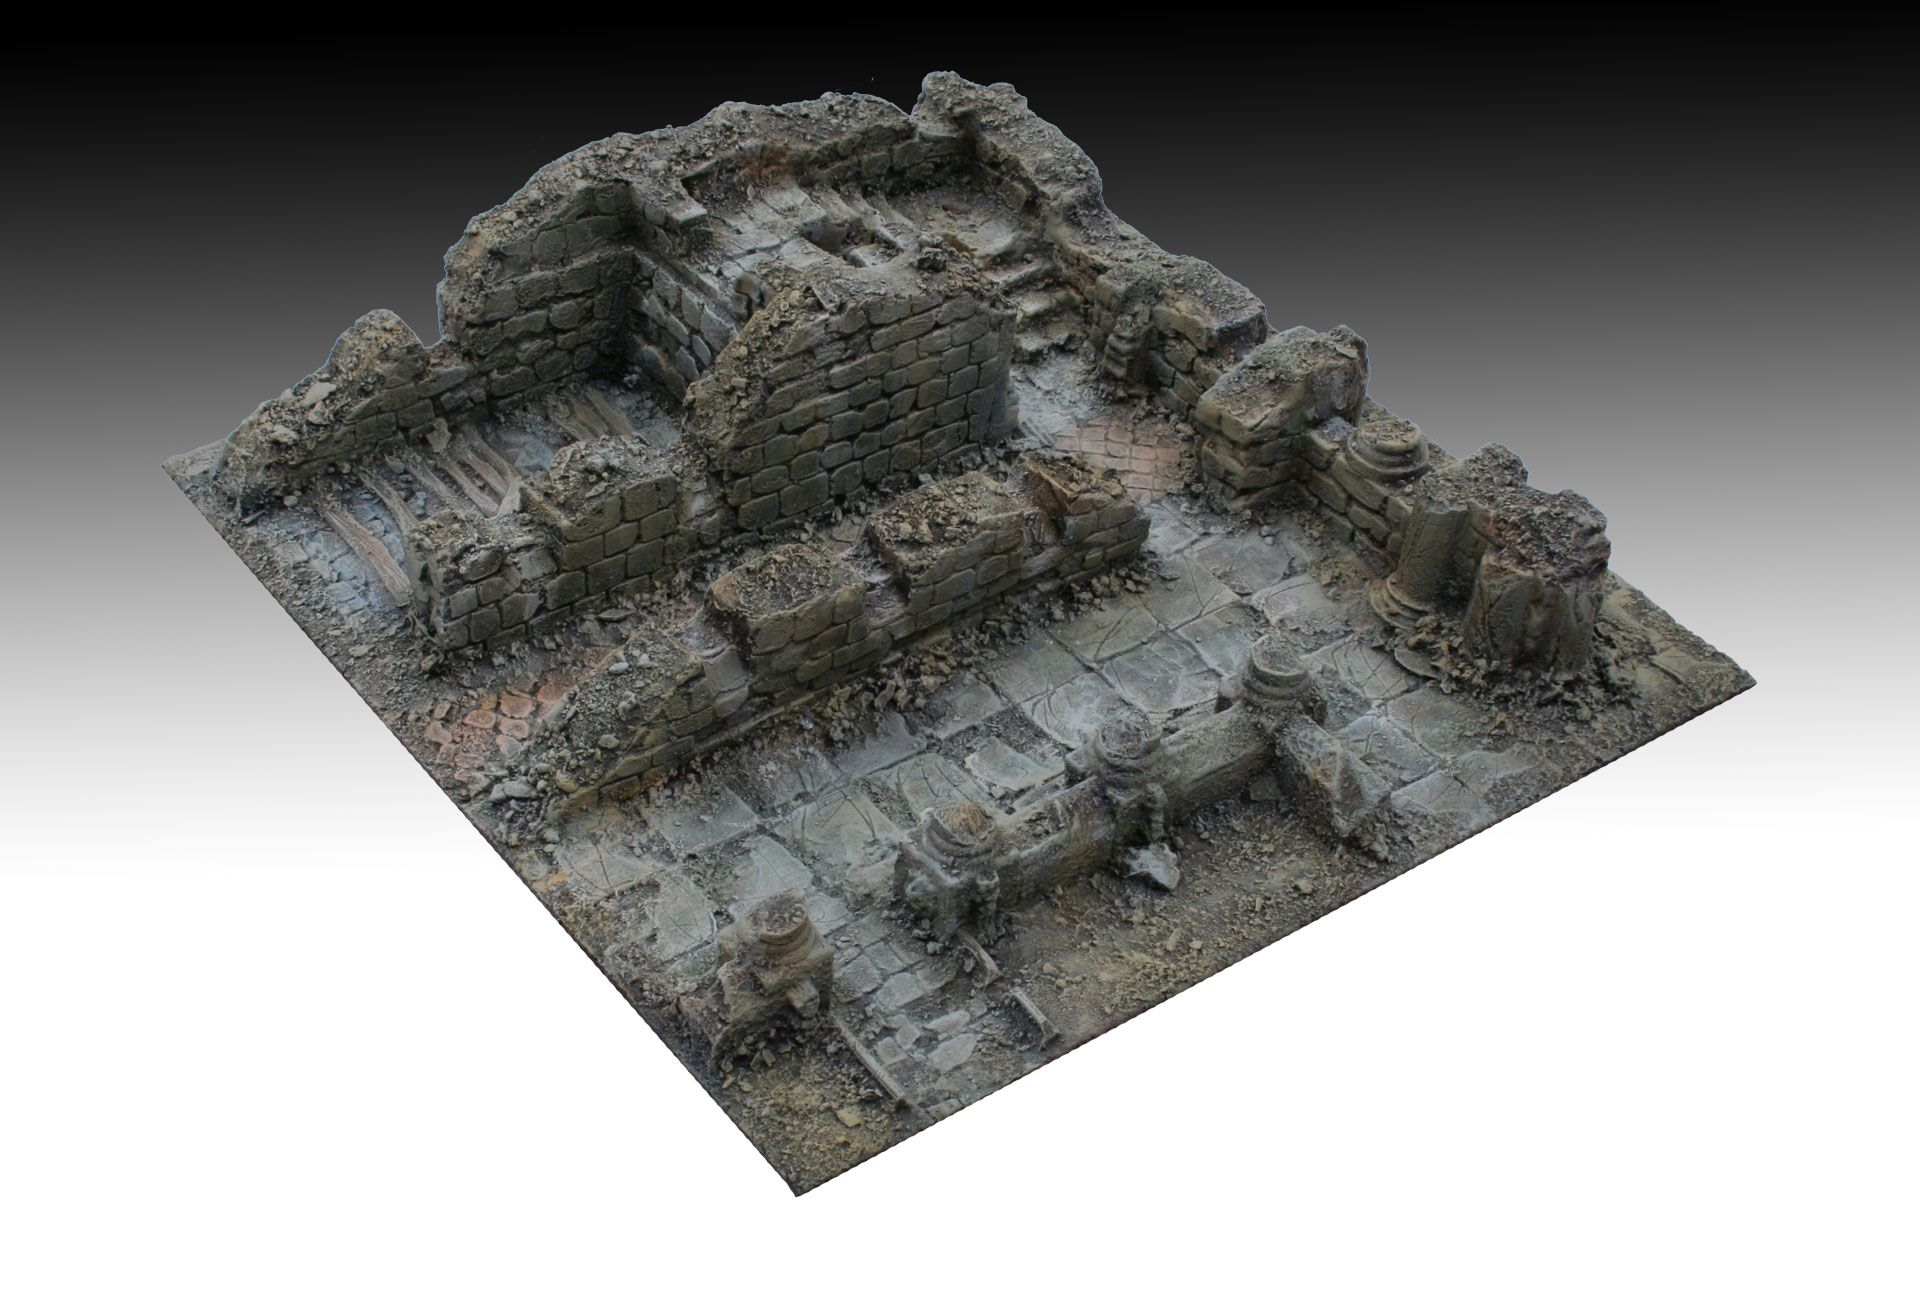 project for kickstarter platform: dedicated to the creation of bases 30x30 cm. for 3D tabletops for wargames and skirmish in 28-35 mm. - Master - 65  http://manorhouseworkshop.com/2015/12/04/update-8-3d-bases-modular-terrain-skirmish-wargame/